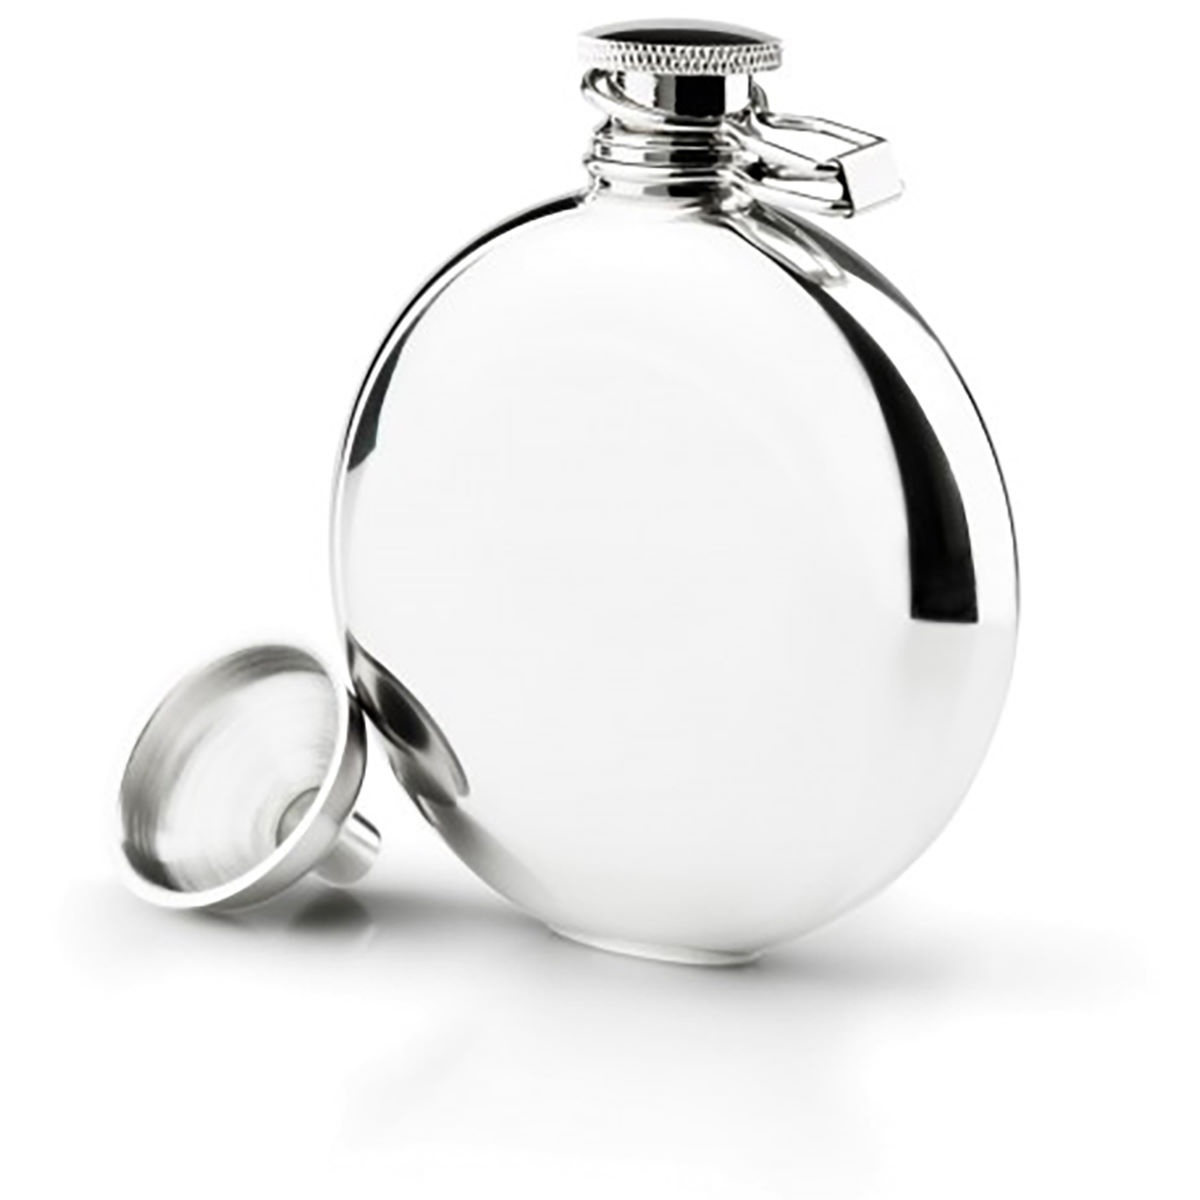 GSI Outdoors Glacier Stainless 5 fl oz Classic Flask - Termos y cantimploras